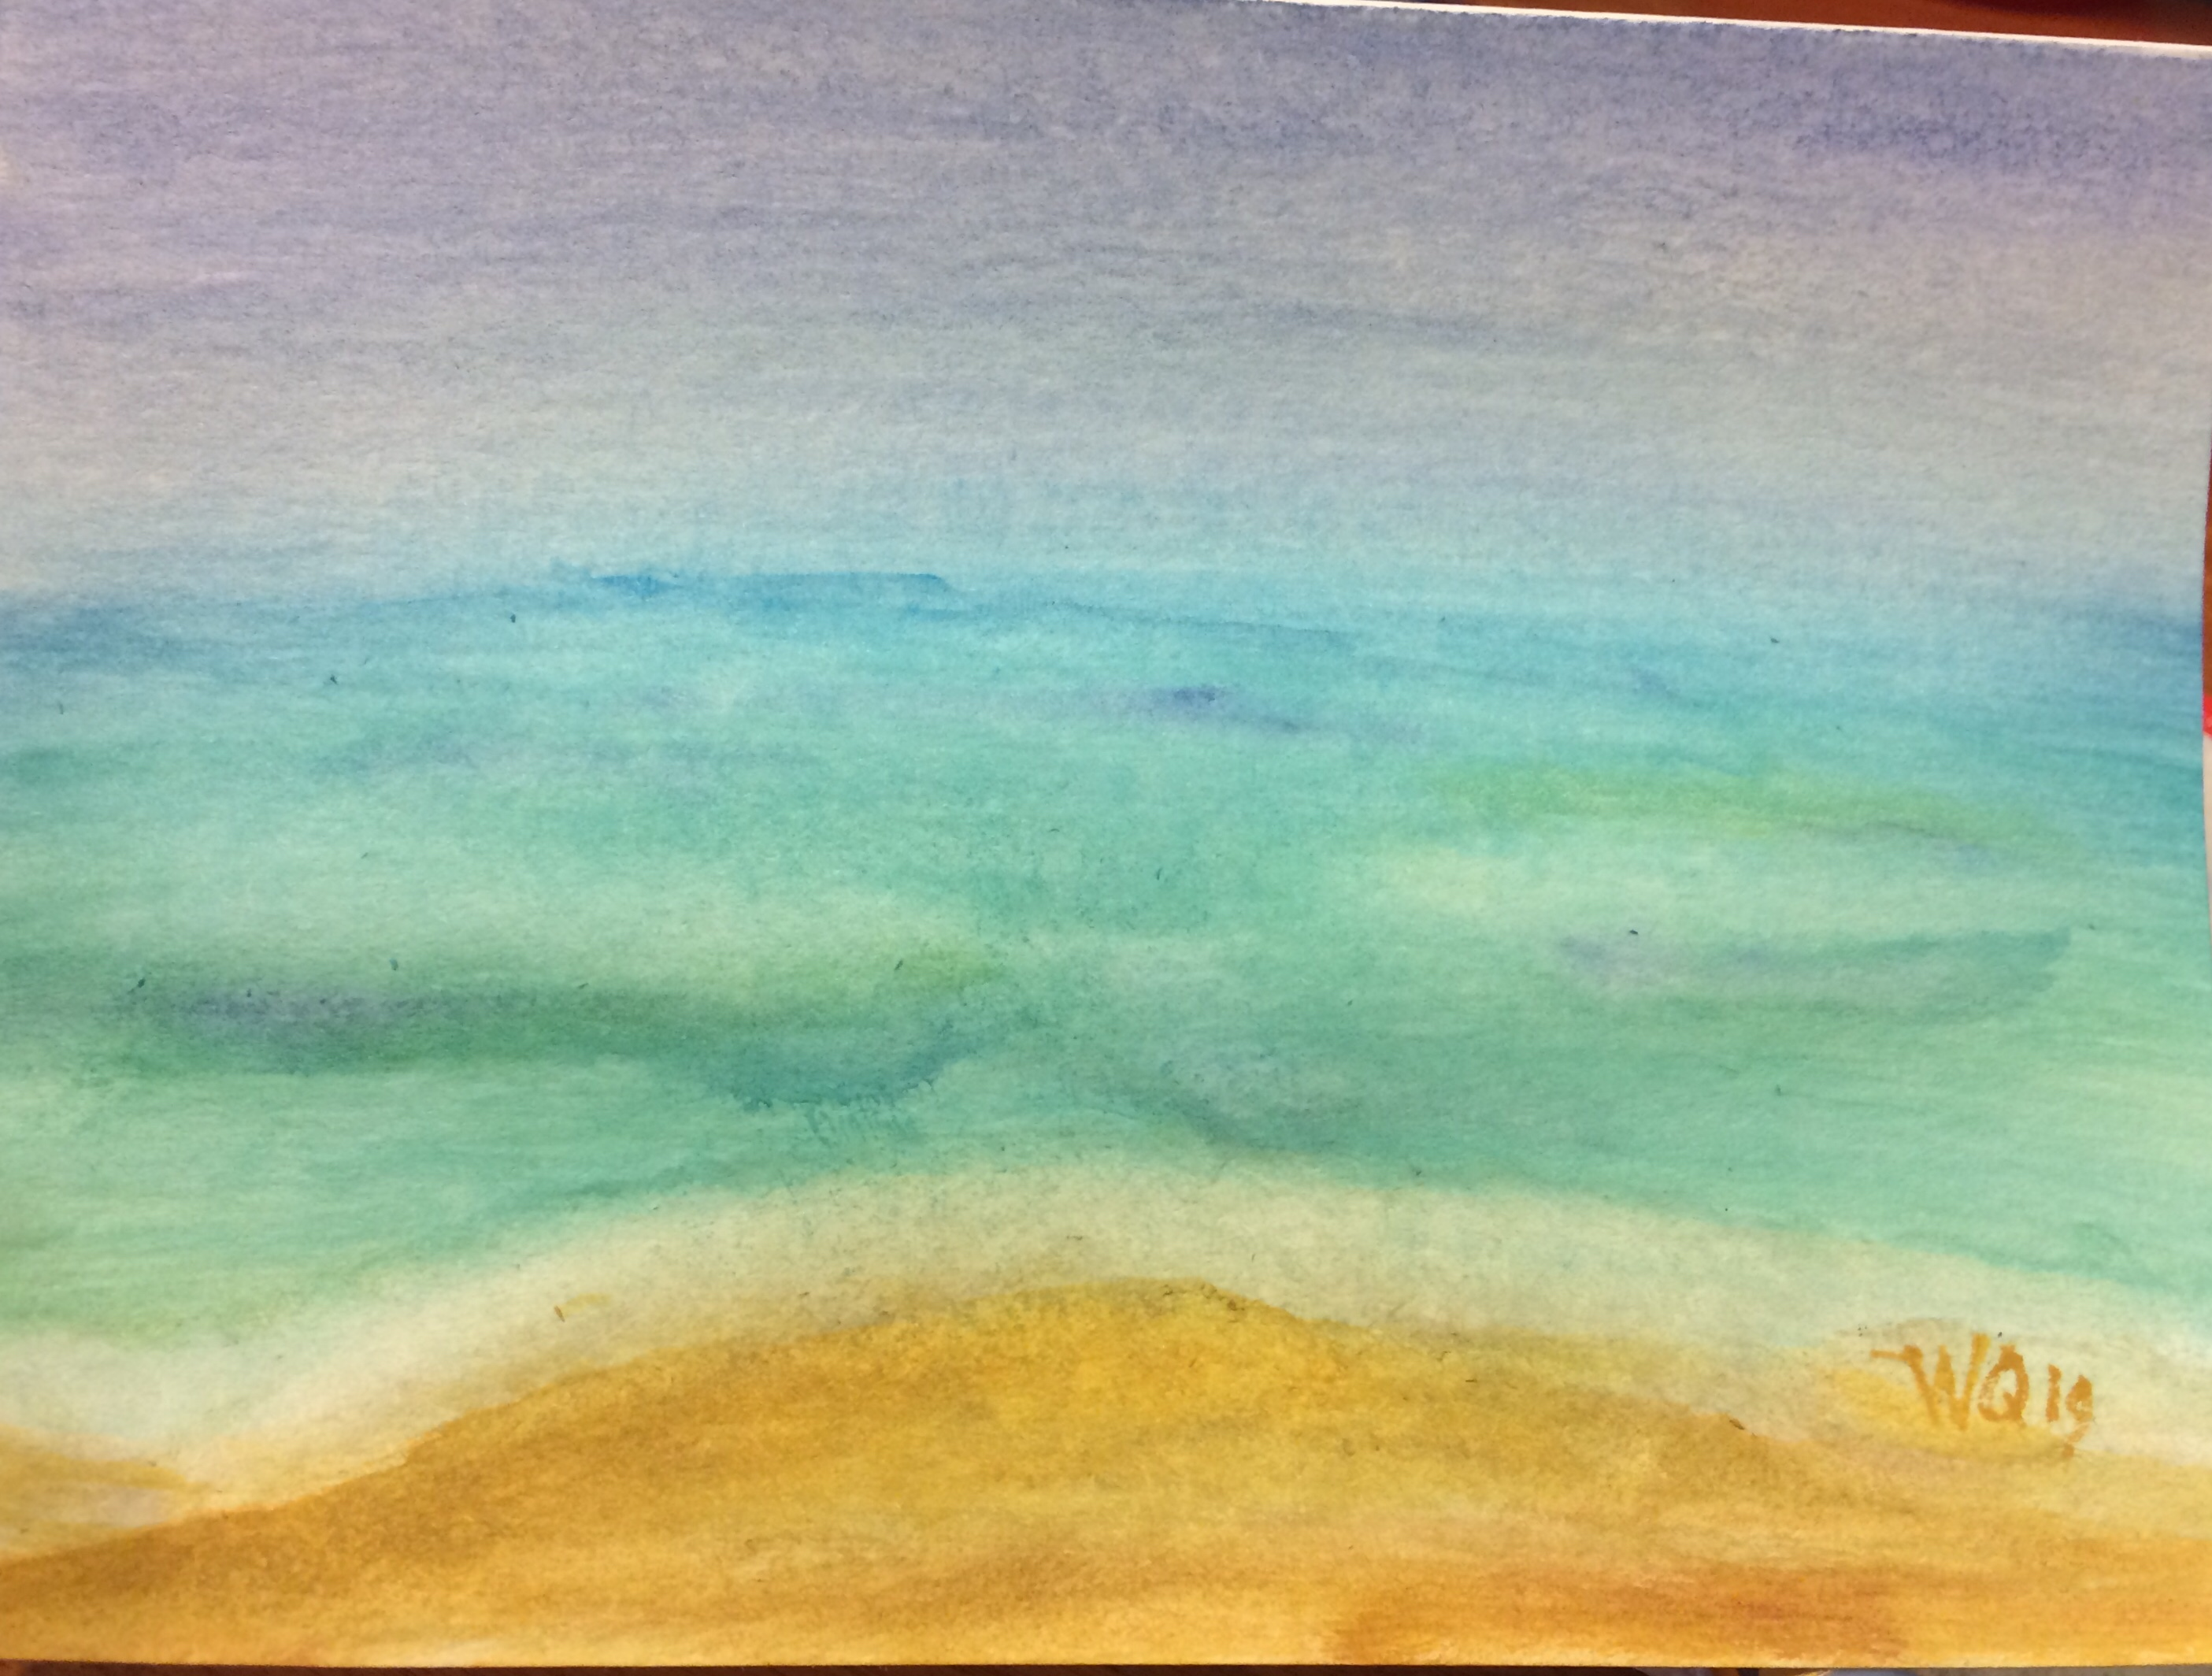 watercolour painting of sky, ocean, and beach